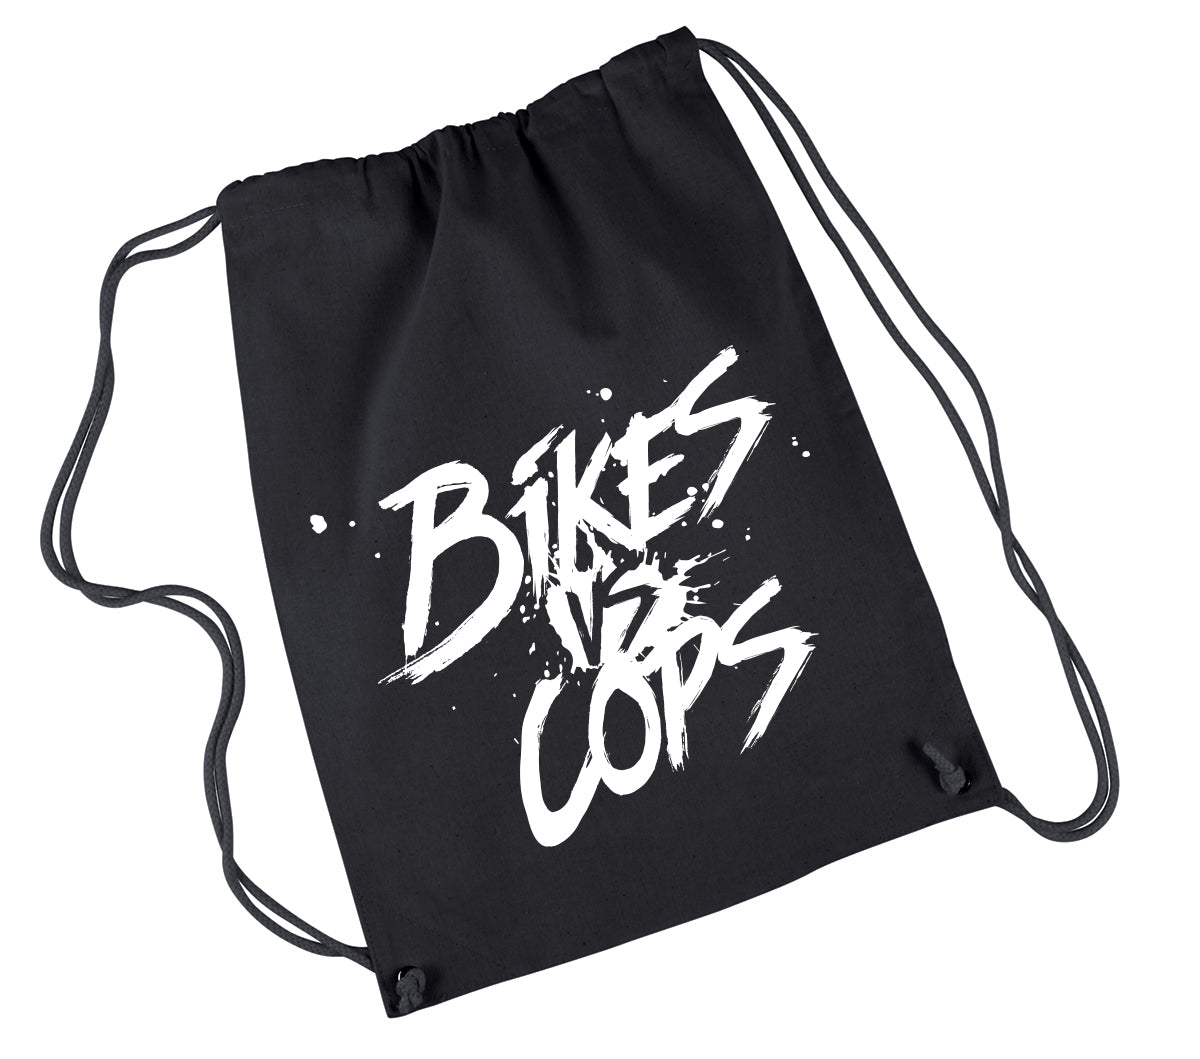 DRAWSTRING BACKPACK - BIKES VS COPS SPLATTER